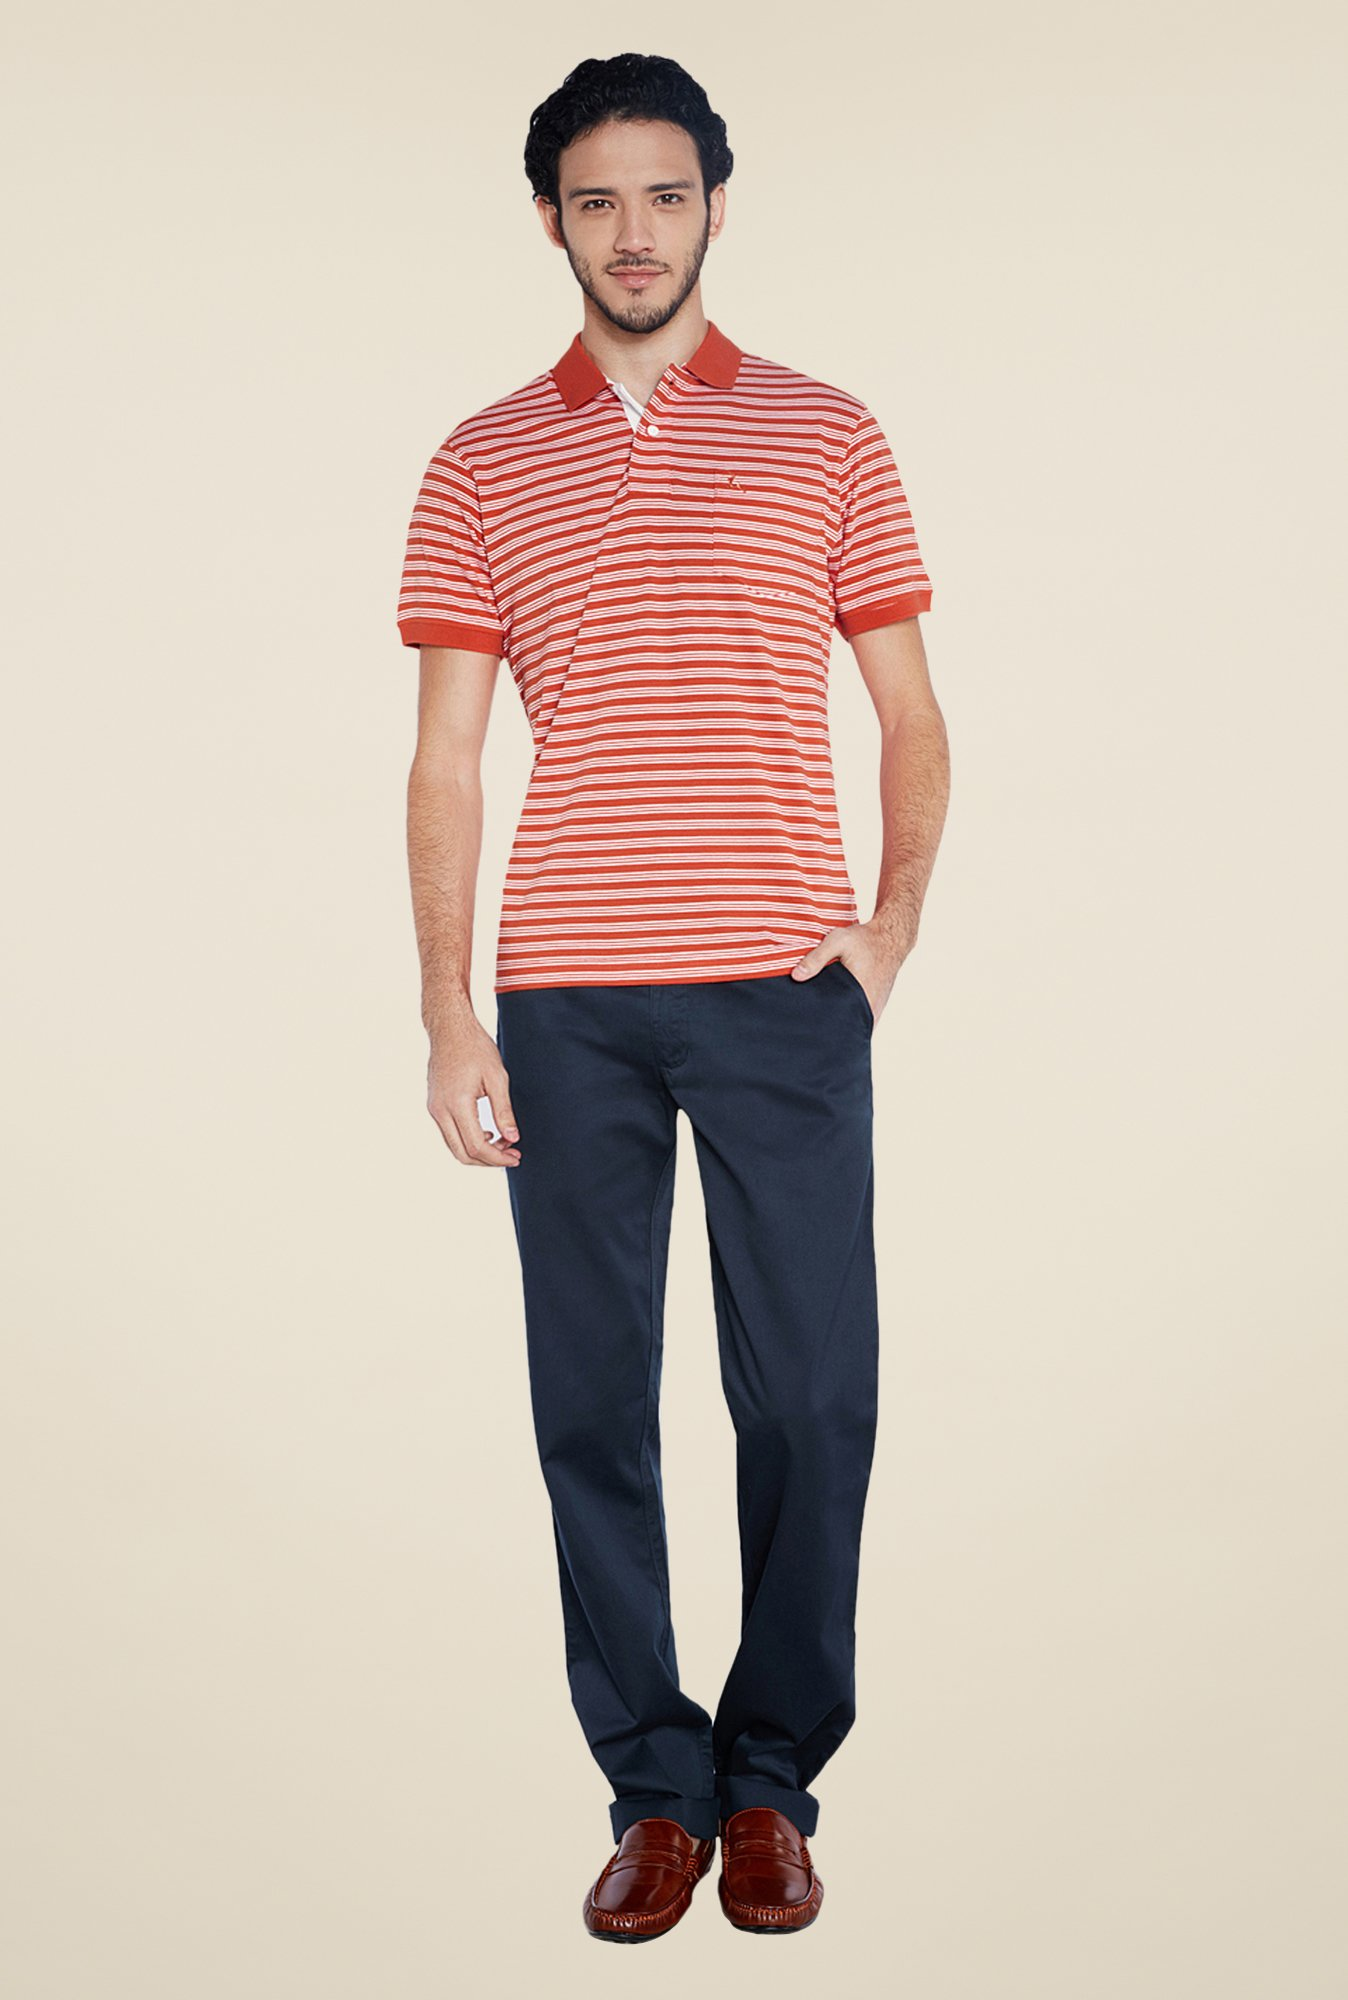 Parx Orange Striped Polo T Shirt